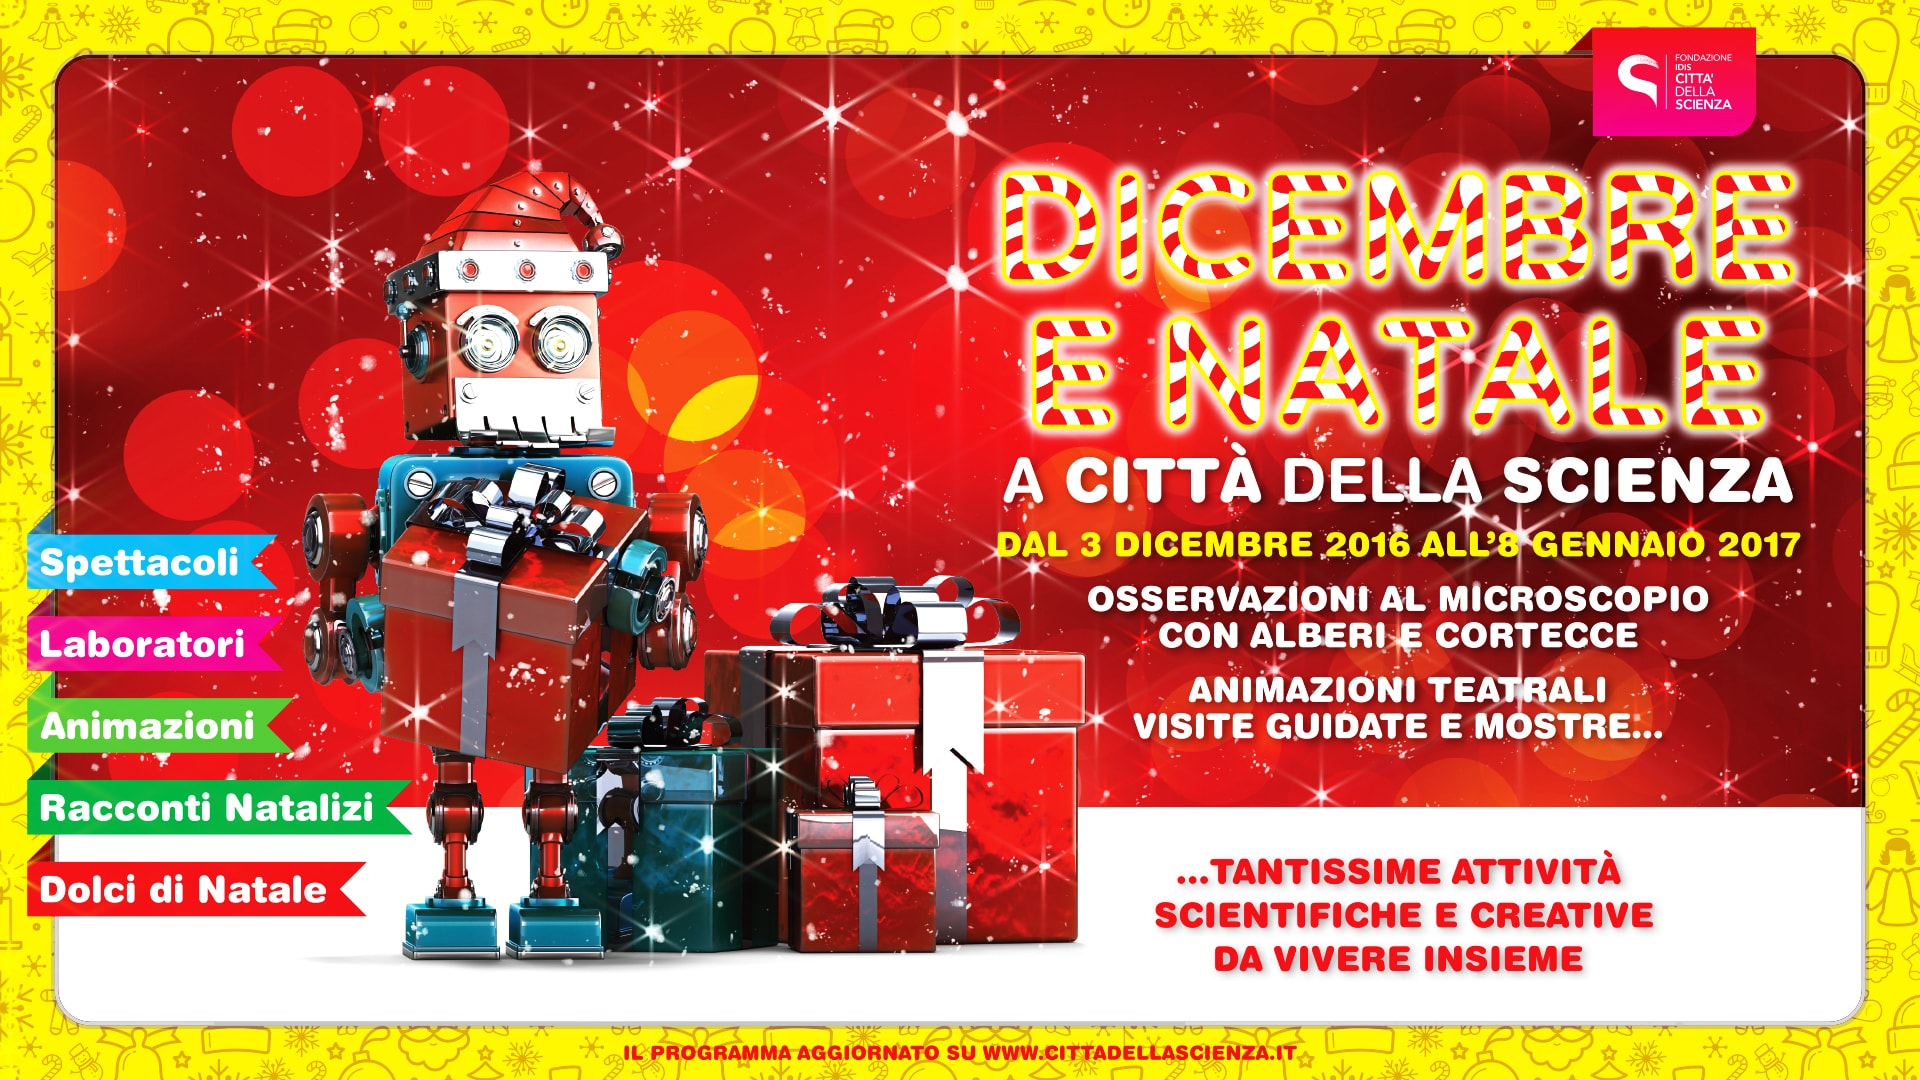 BANNER_NATALE_1920_x_1080_px-min